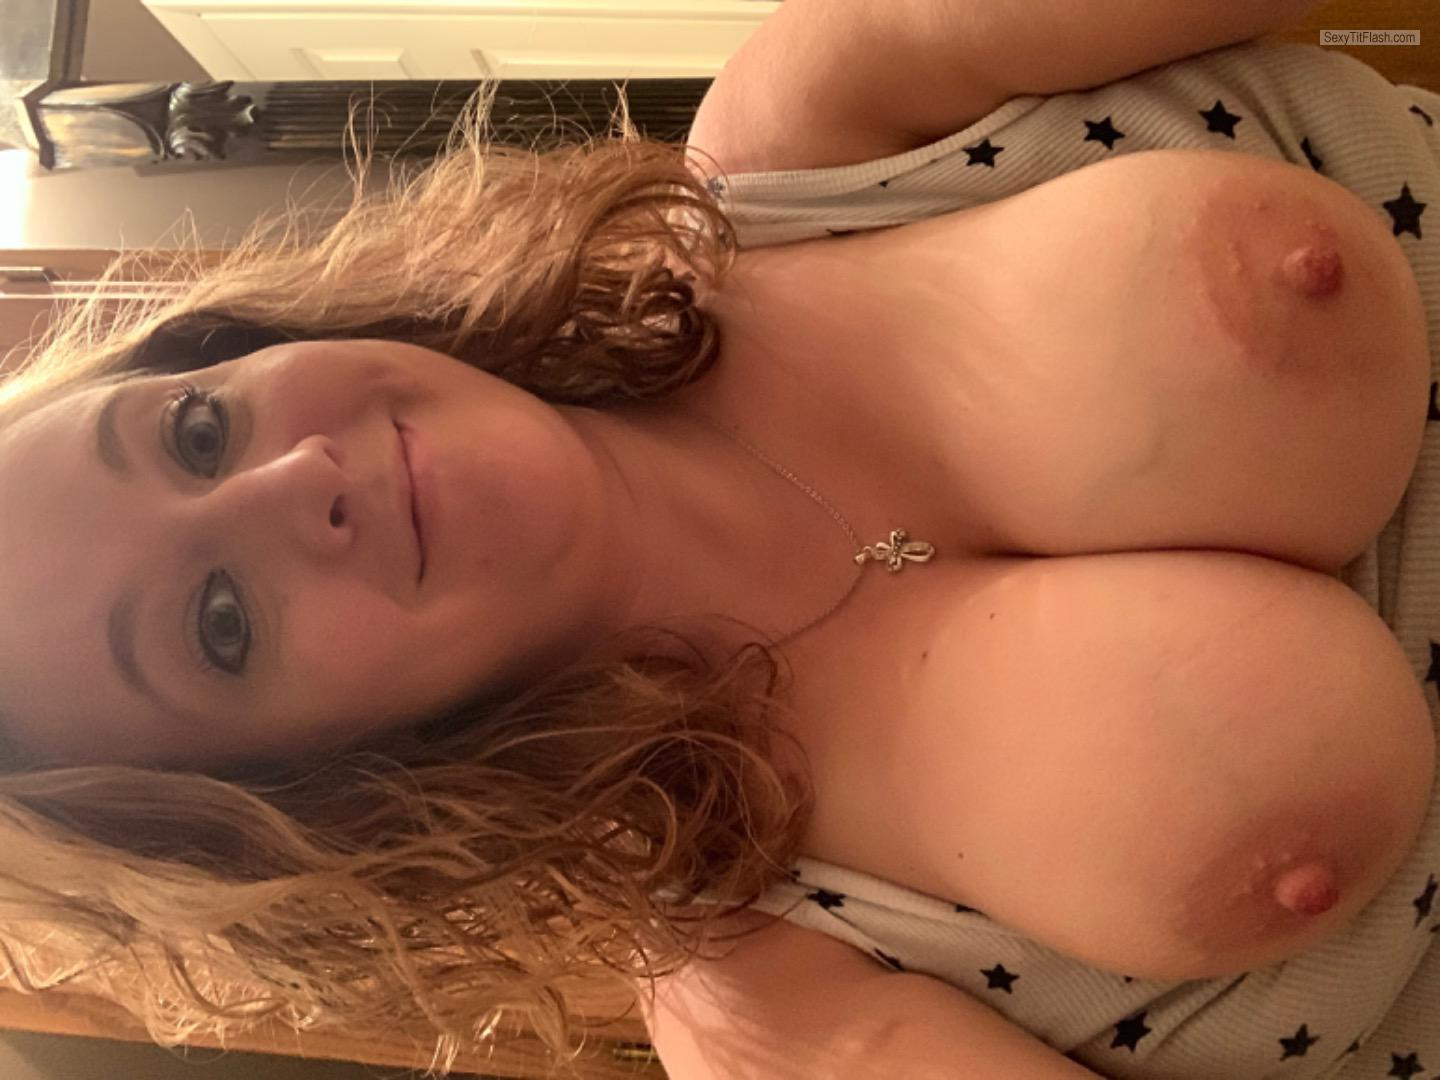 Tit Flash: My Very Big Tits (Selfie) - Topless Just Tits from United States